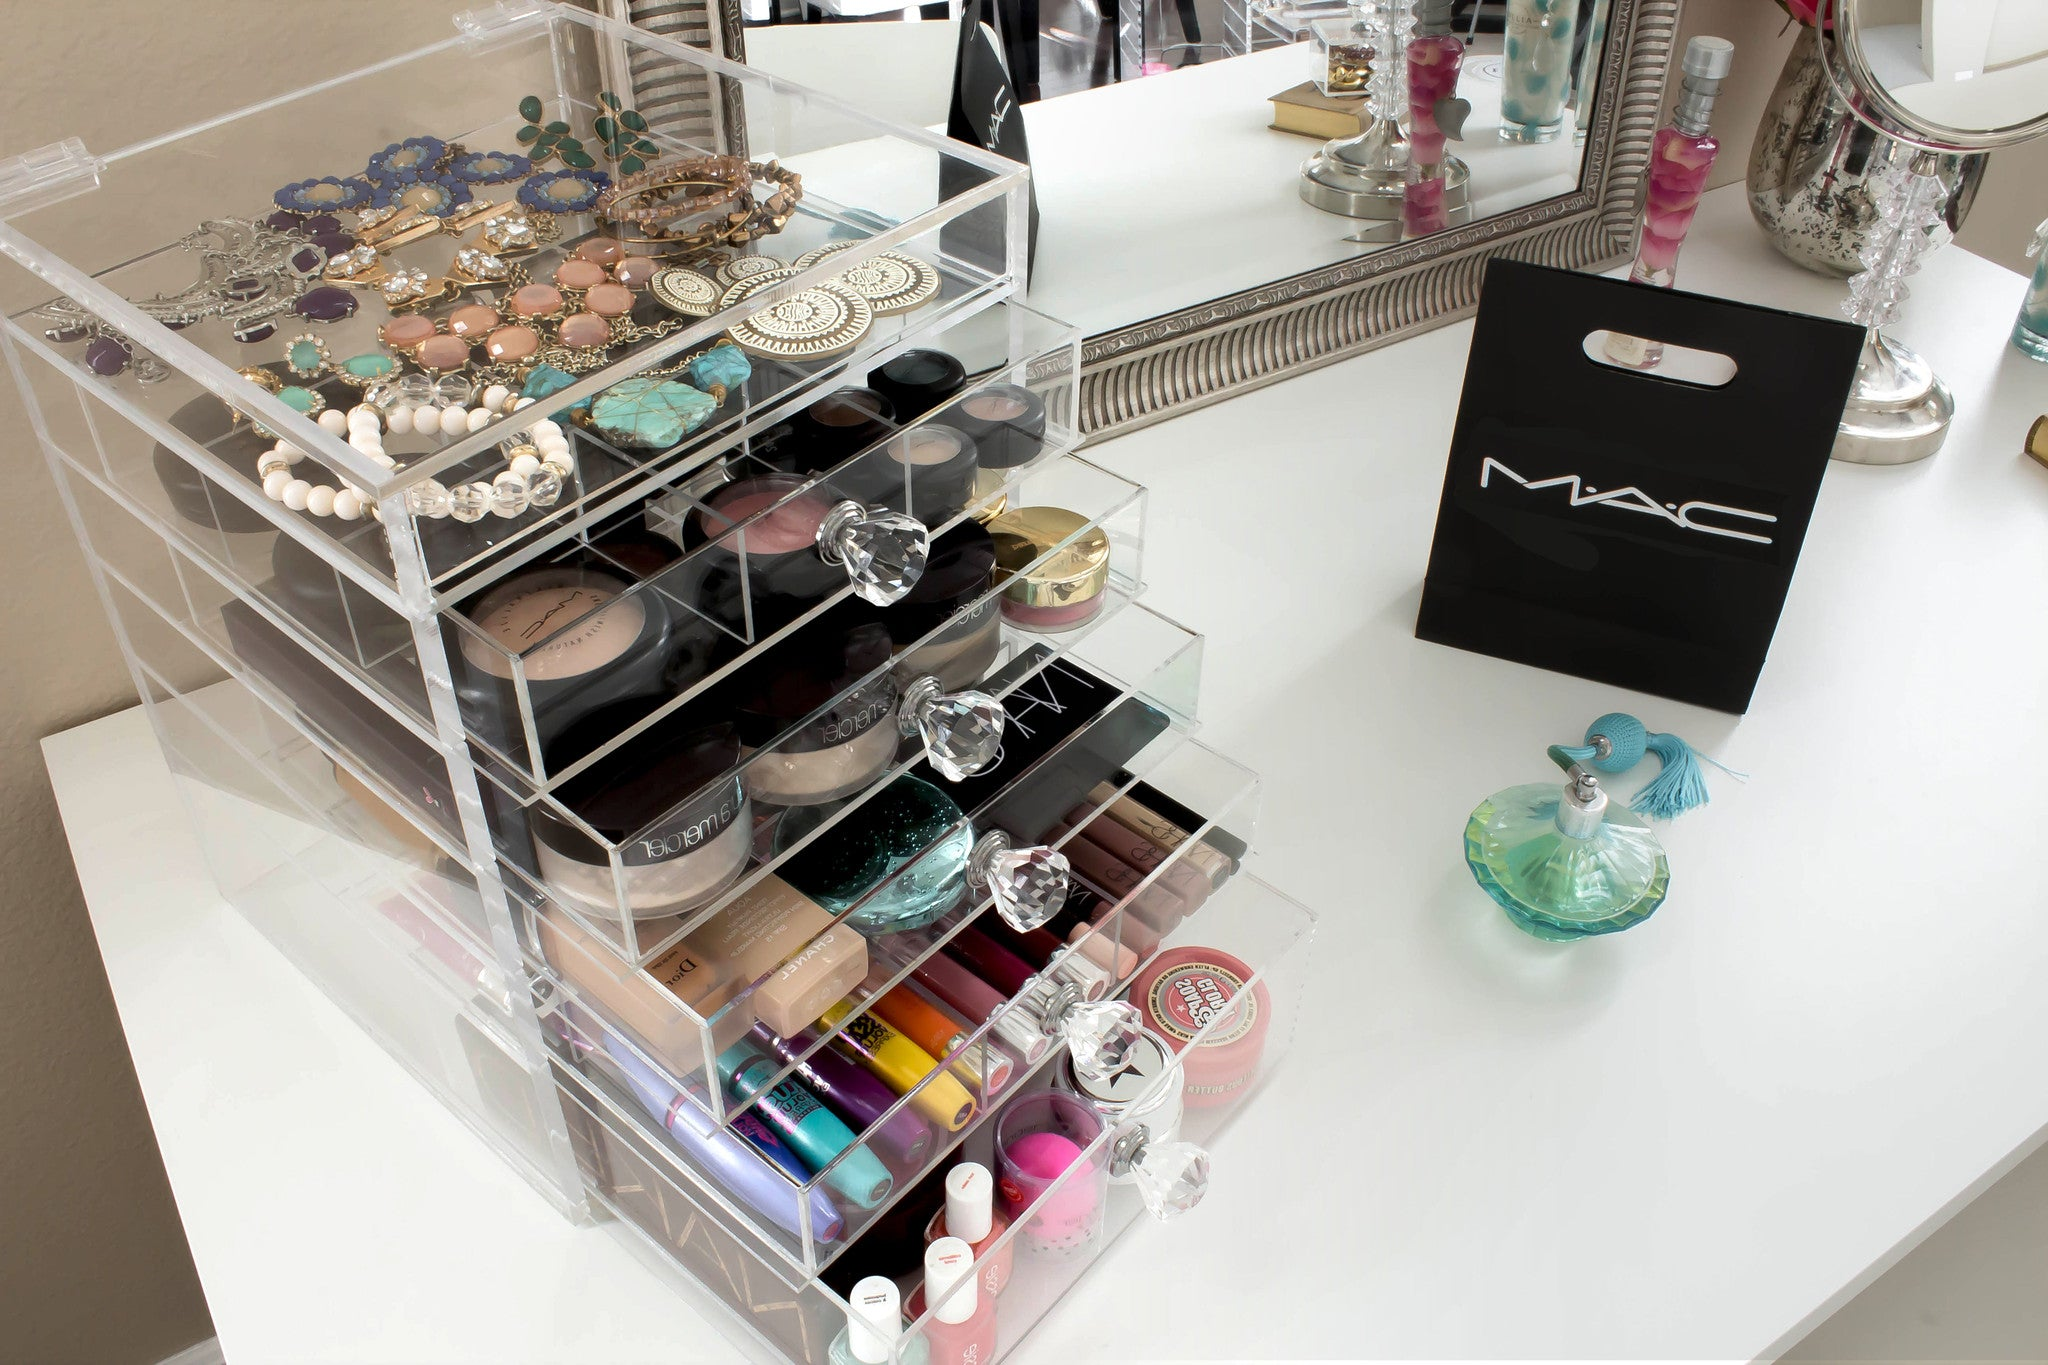 Design Makeup Organizer Drawers clear acrylic makeup organizer kardashian style storage cutie cube with 5 drawers flip top and diamond handles